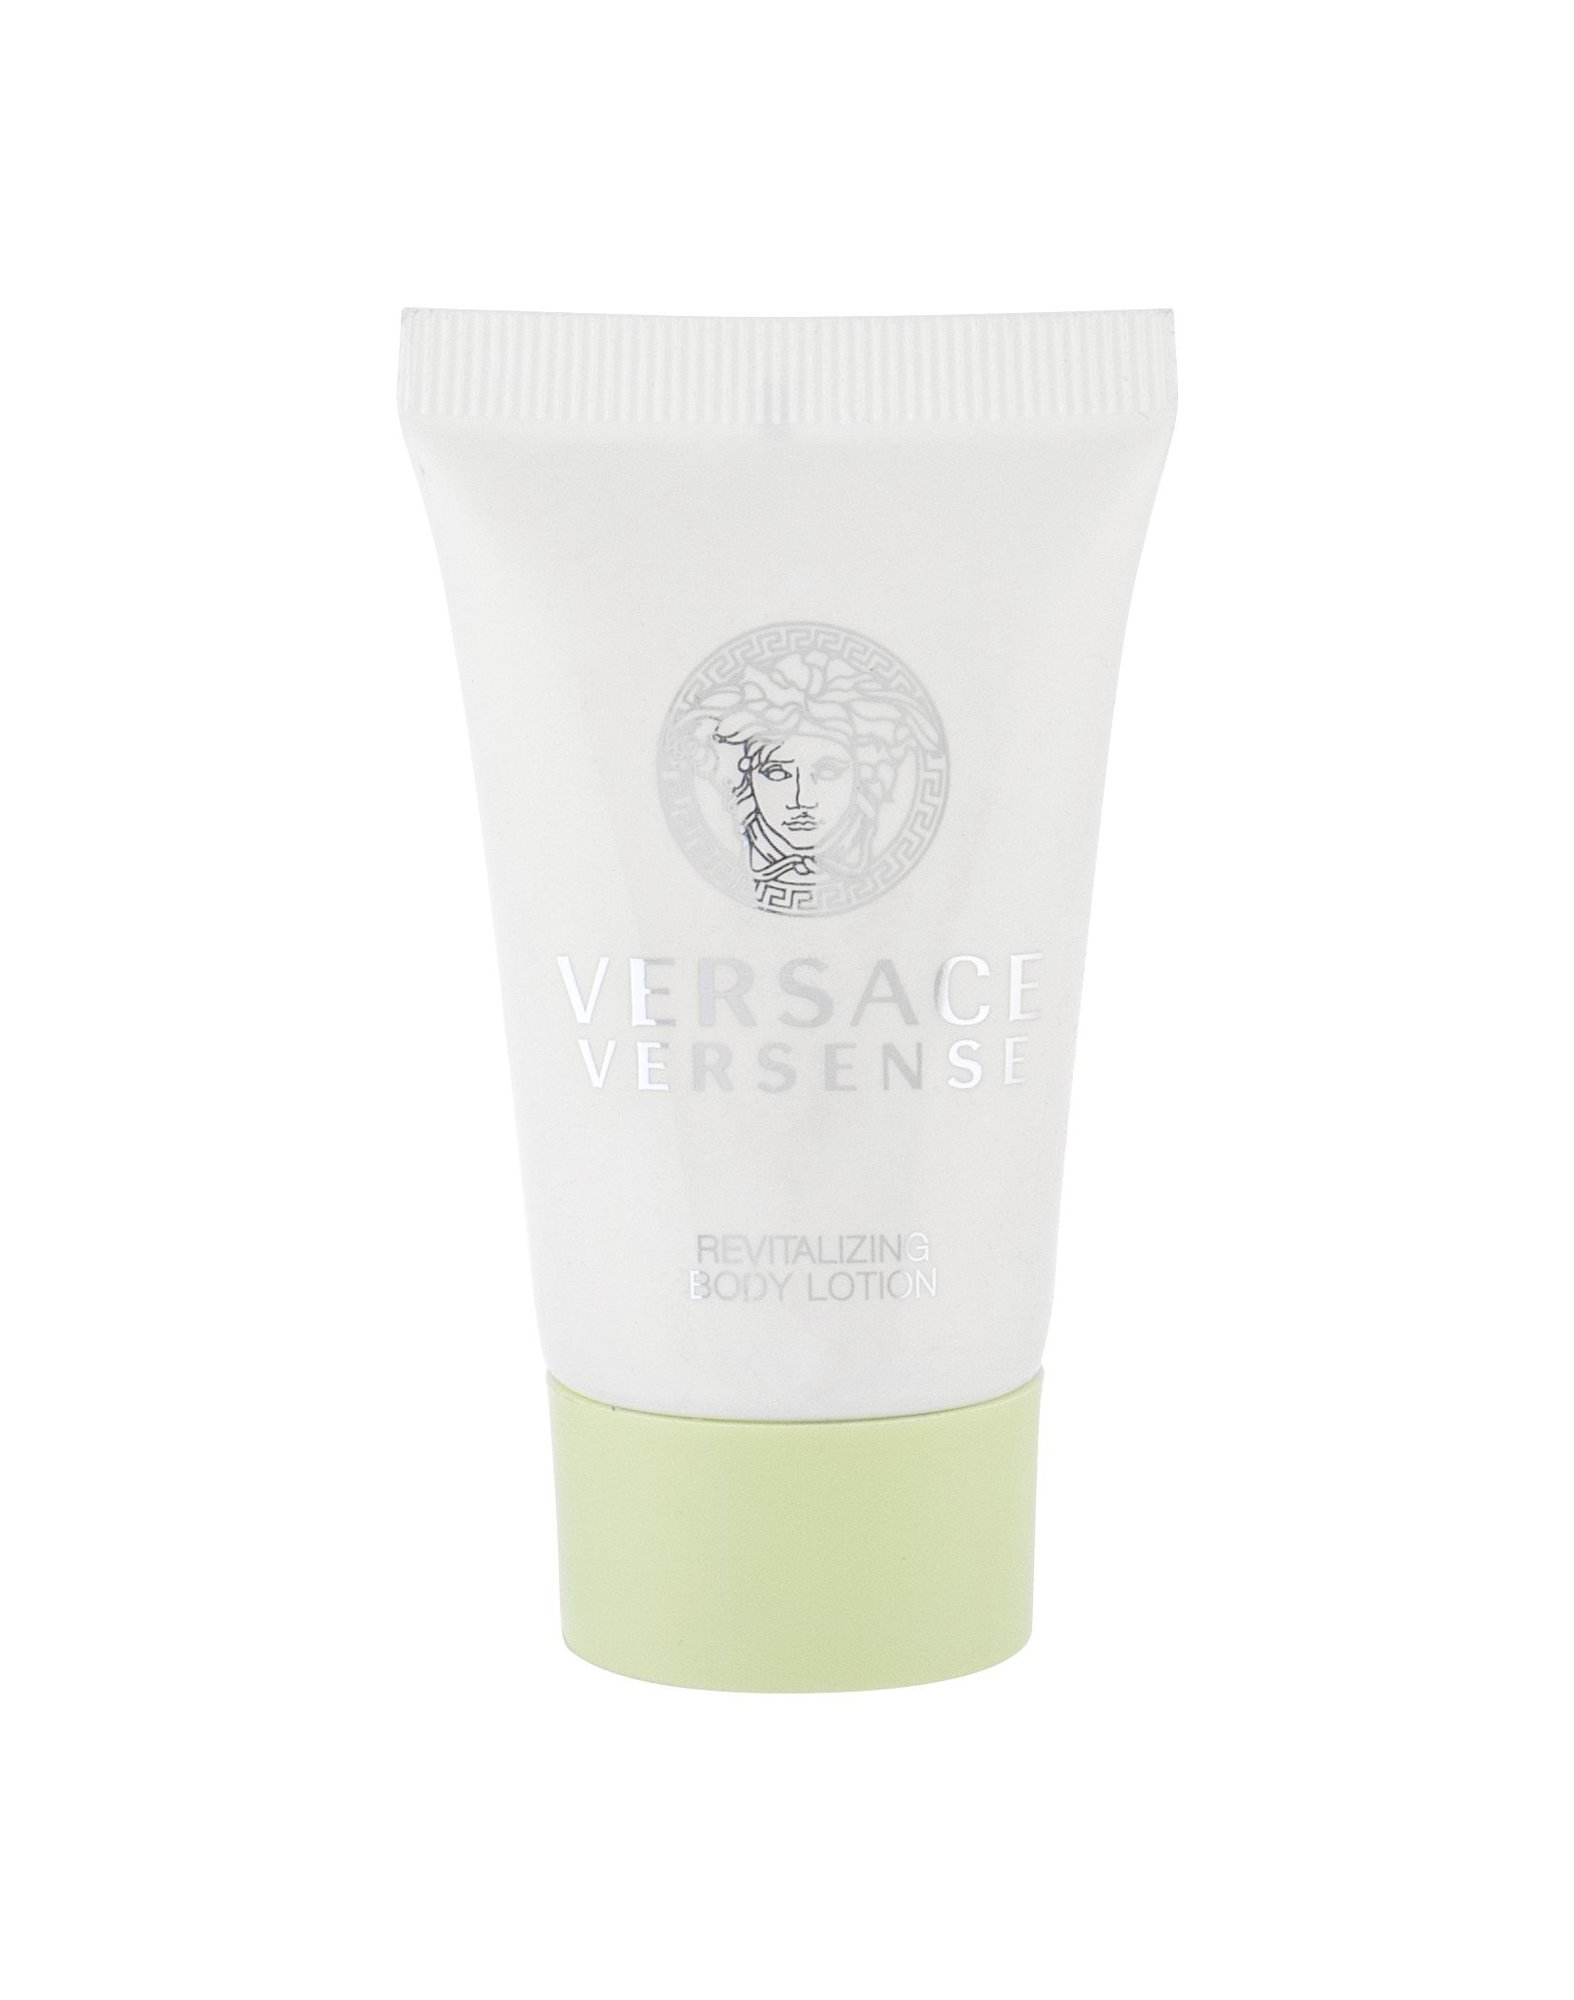 Versace Versense Body Lotion 25ml